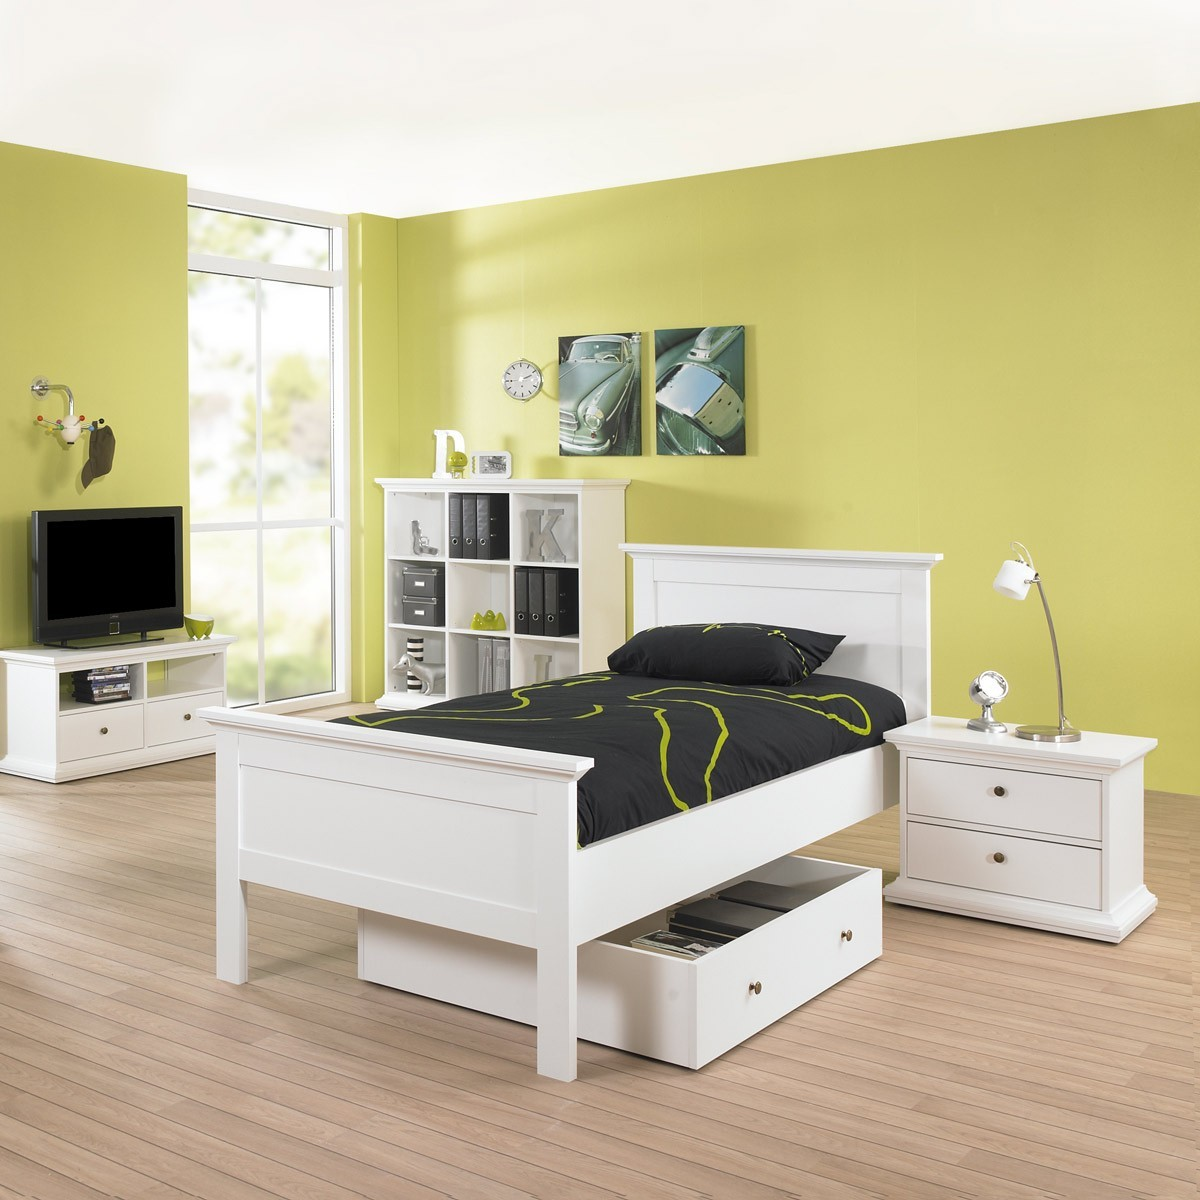 grundriss bungalow 200 qm die neuesten innenarchitekturideen. Black Bedroom Furniture Sets. Home Design Ideas